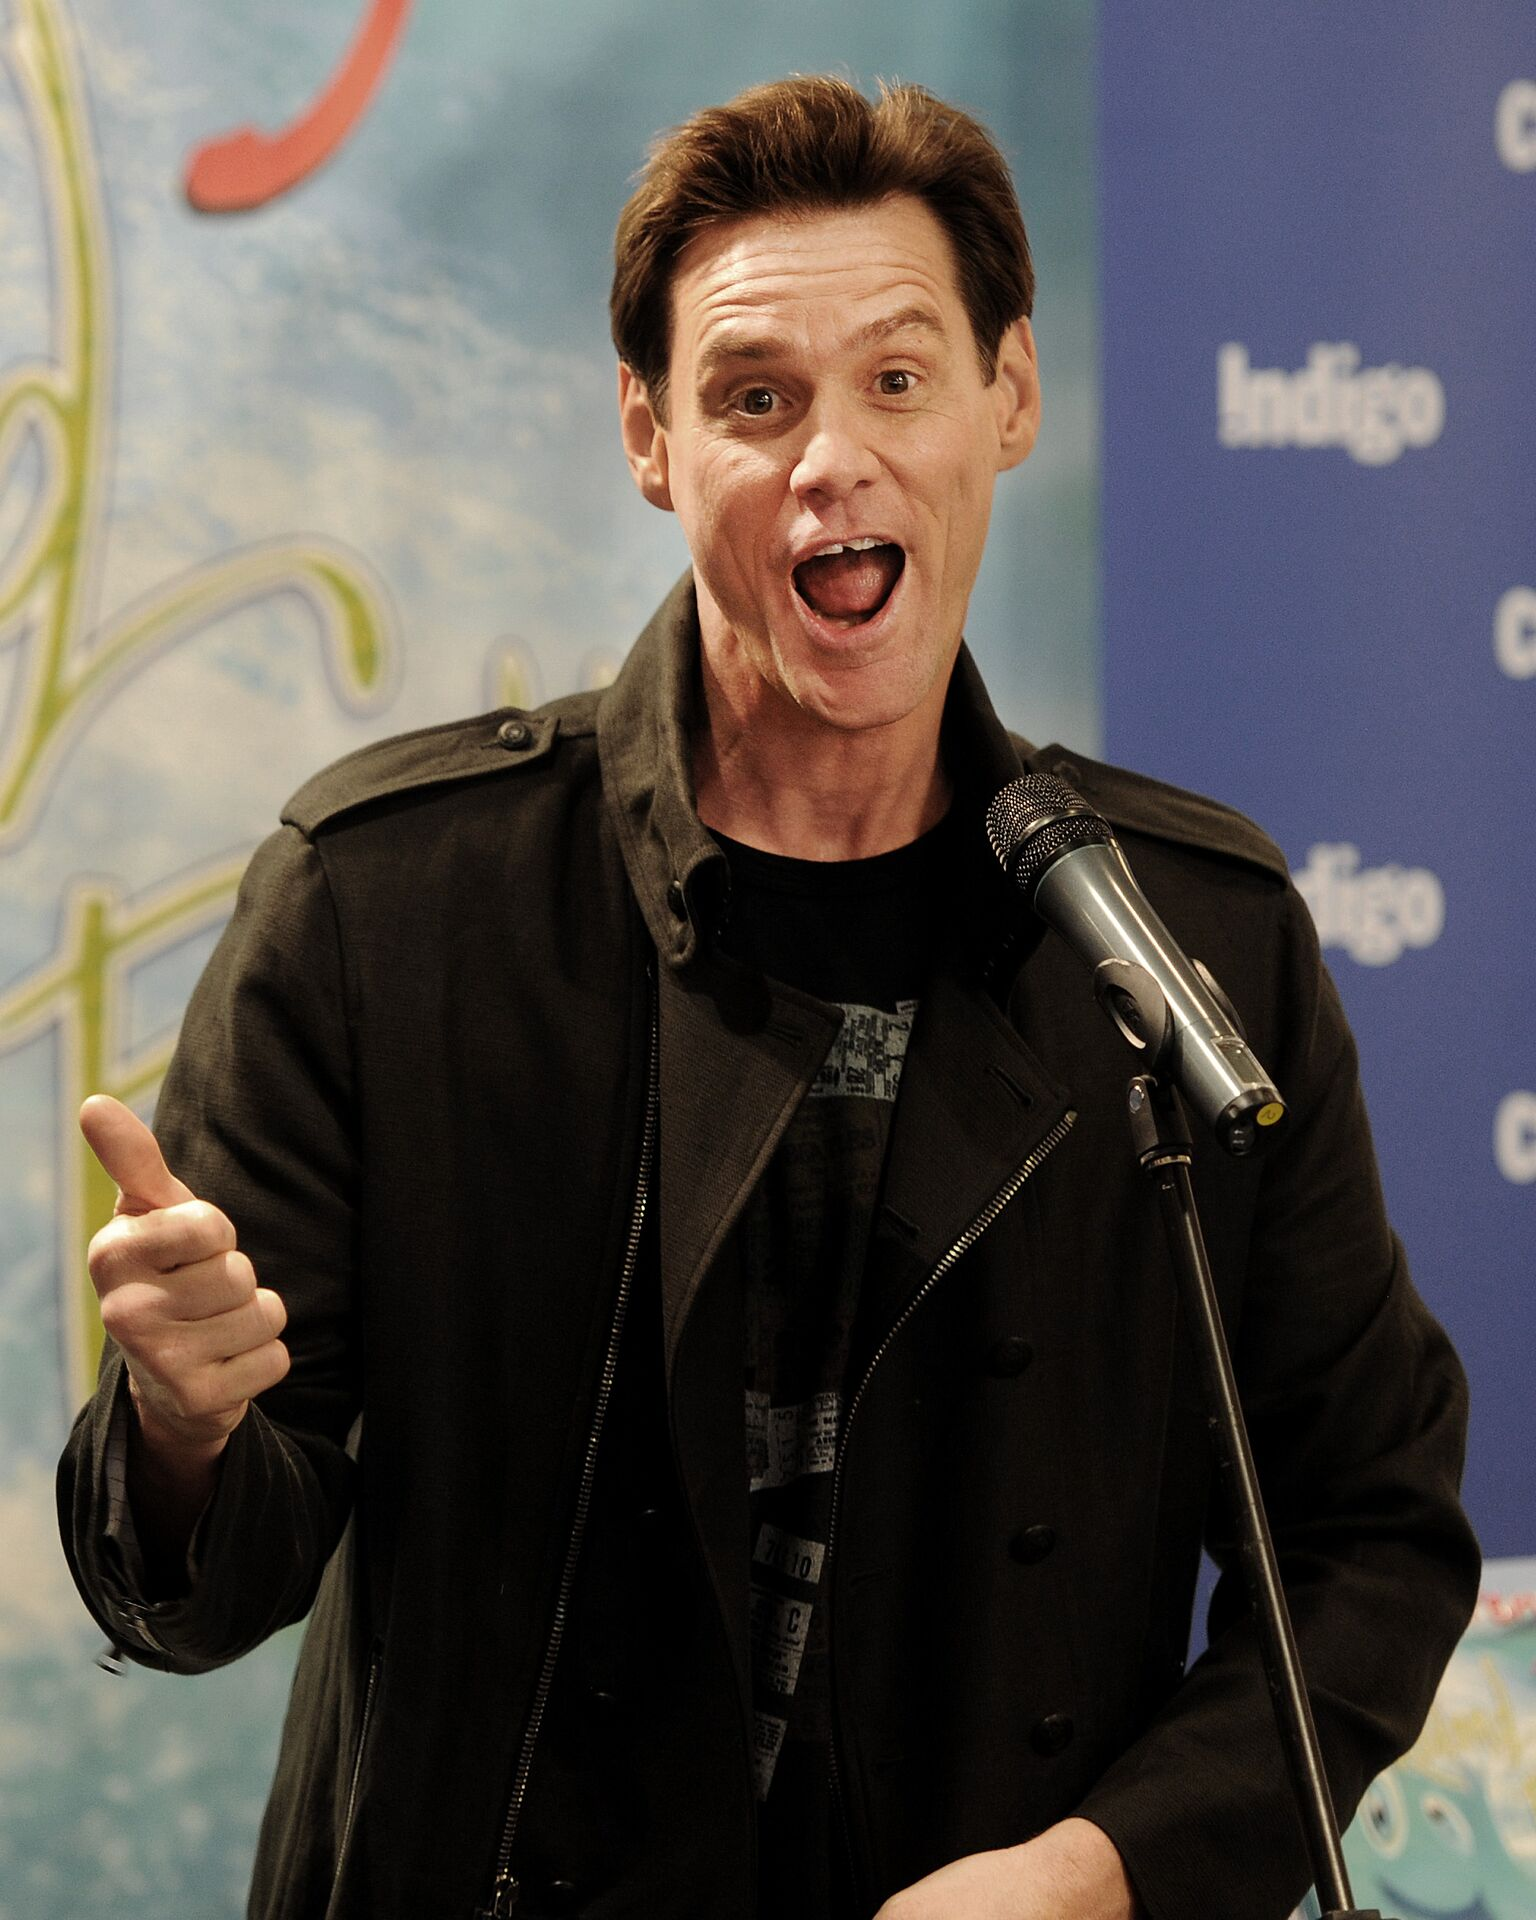 Jim Carrey hosts a signing for his children's book 'How Roland Rolls' at Indigo at Yorkdale Mall | Getty Images